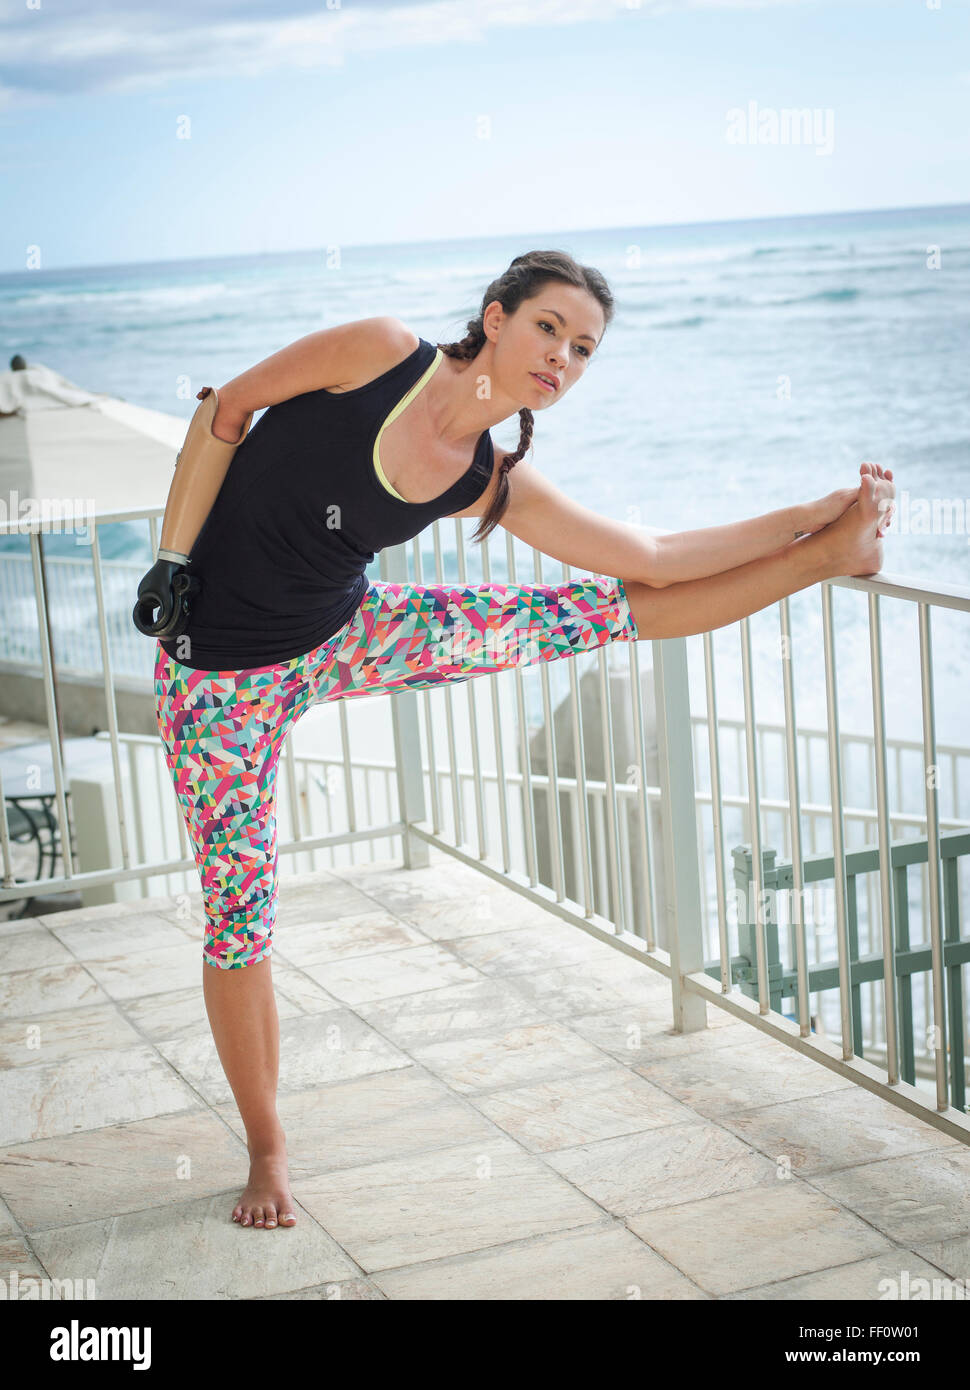 Mixed race amputee athlete stretching on balcony Stock Photo